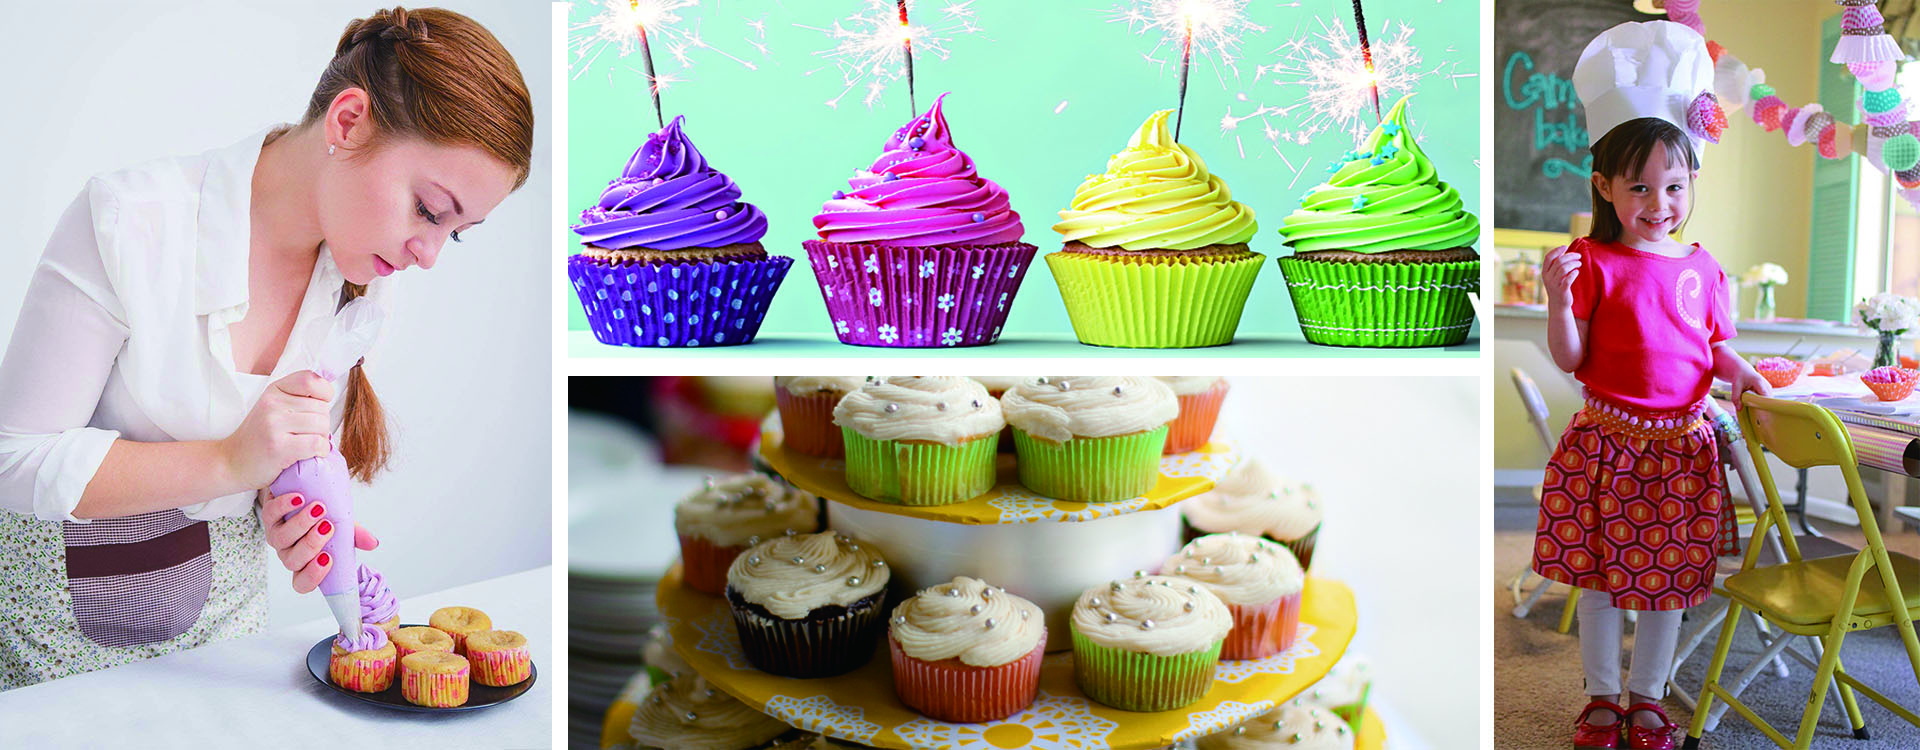 Home party decoration colorful cupcake liners